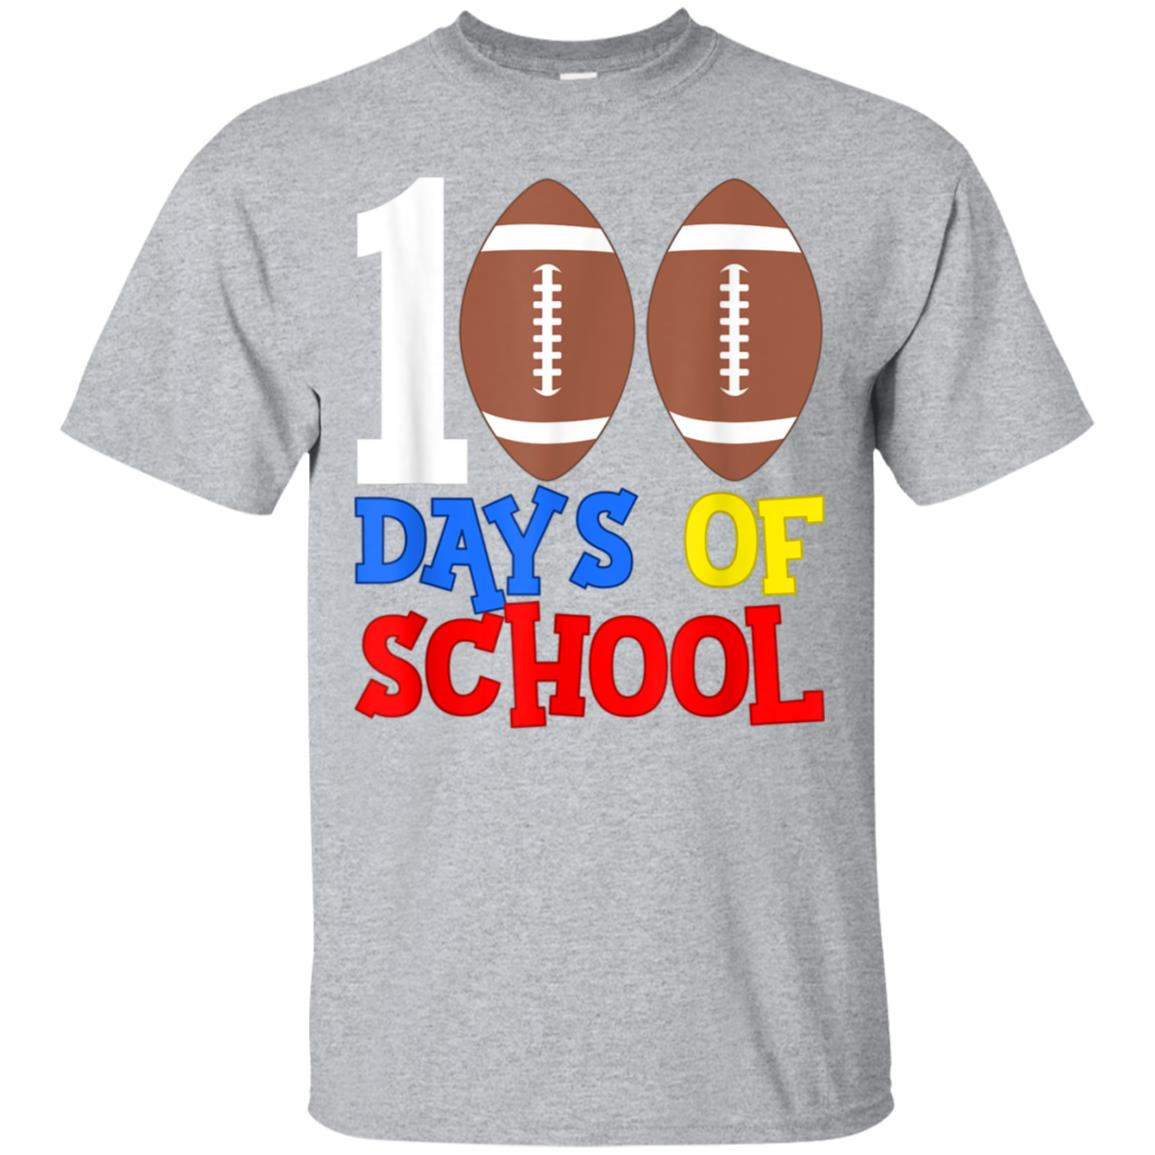 Happy 100th Day 100 Days of School T-shirt Football Sports 99promocode